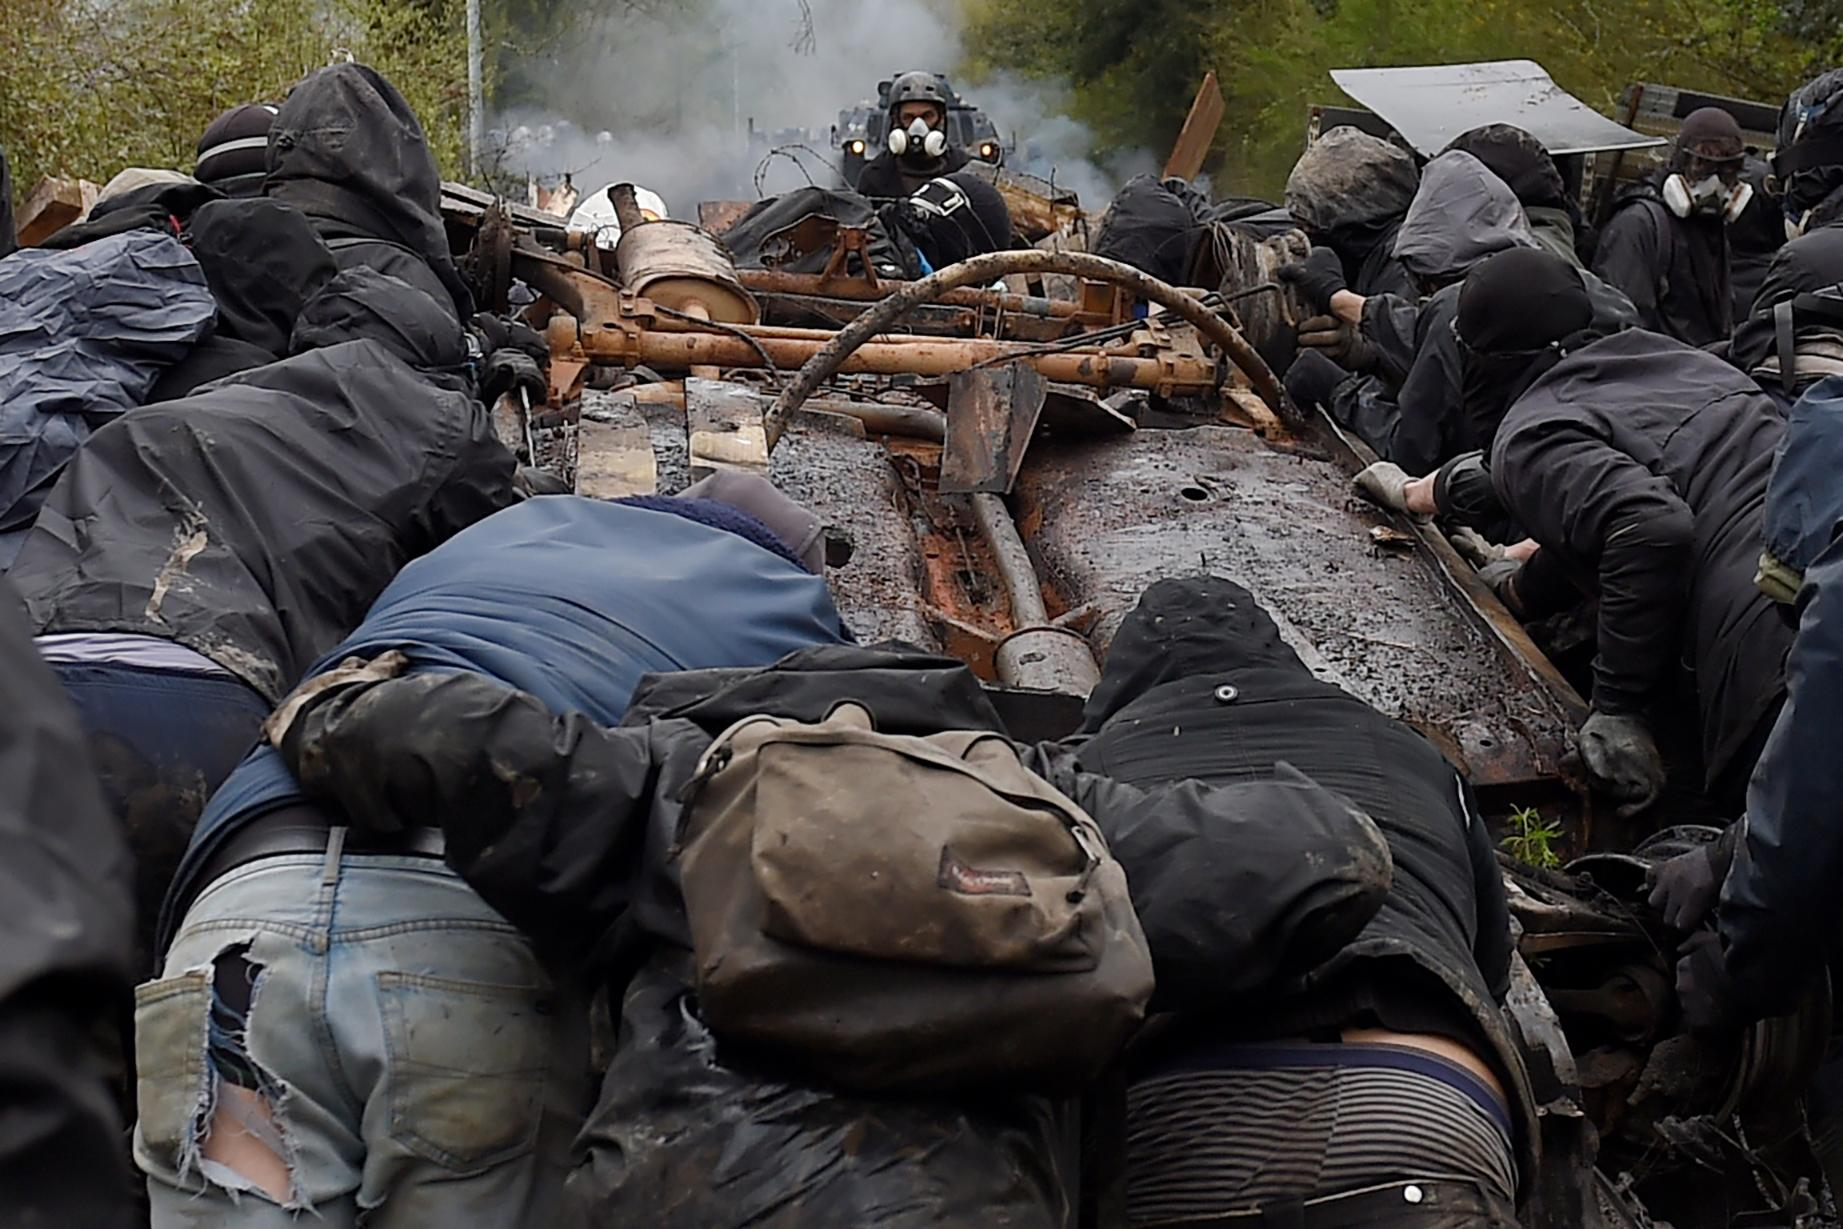 <p>Protesters push the wreckage of a car to build barricade as clashes erupt with riot forces on April 10, 2018 during a police operation to raze the decade-old camp known as ZAD (Zone a Defendre – Zone to defend) at Notre-Dame-des-Landes, near the western city of Nantes, and evict the last of the protesters who had refused to leave despite the government agreeing to ditch a proposed airport. (Photo: Guillaume Souvant/AFP/Getty Images) </p>